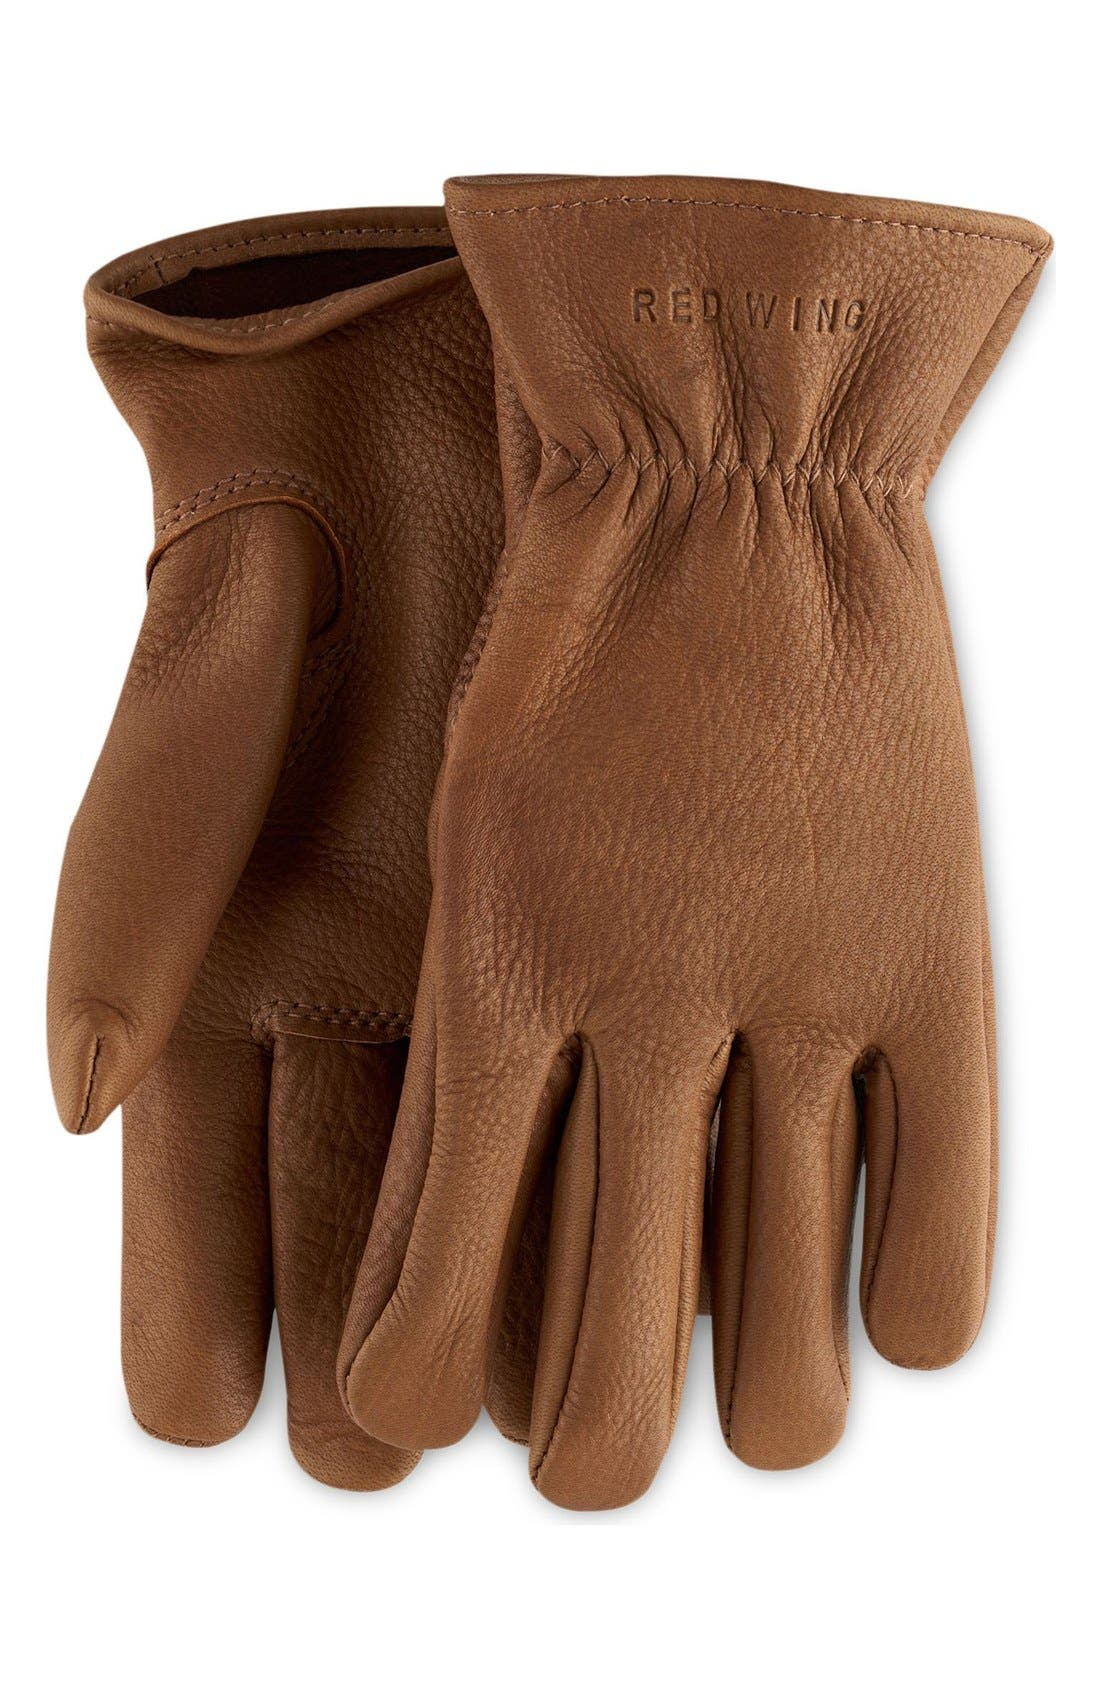 Main Image - Red Wing Buckskin Leather Gloves